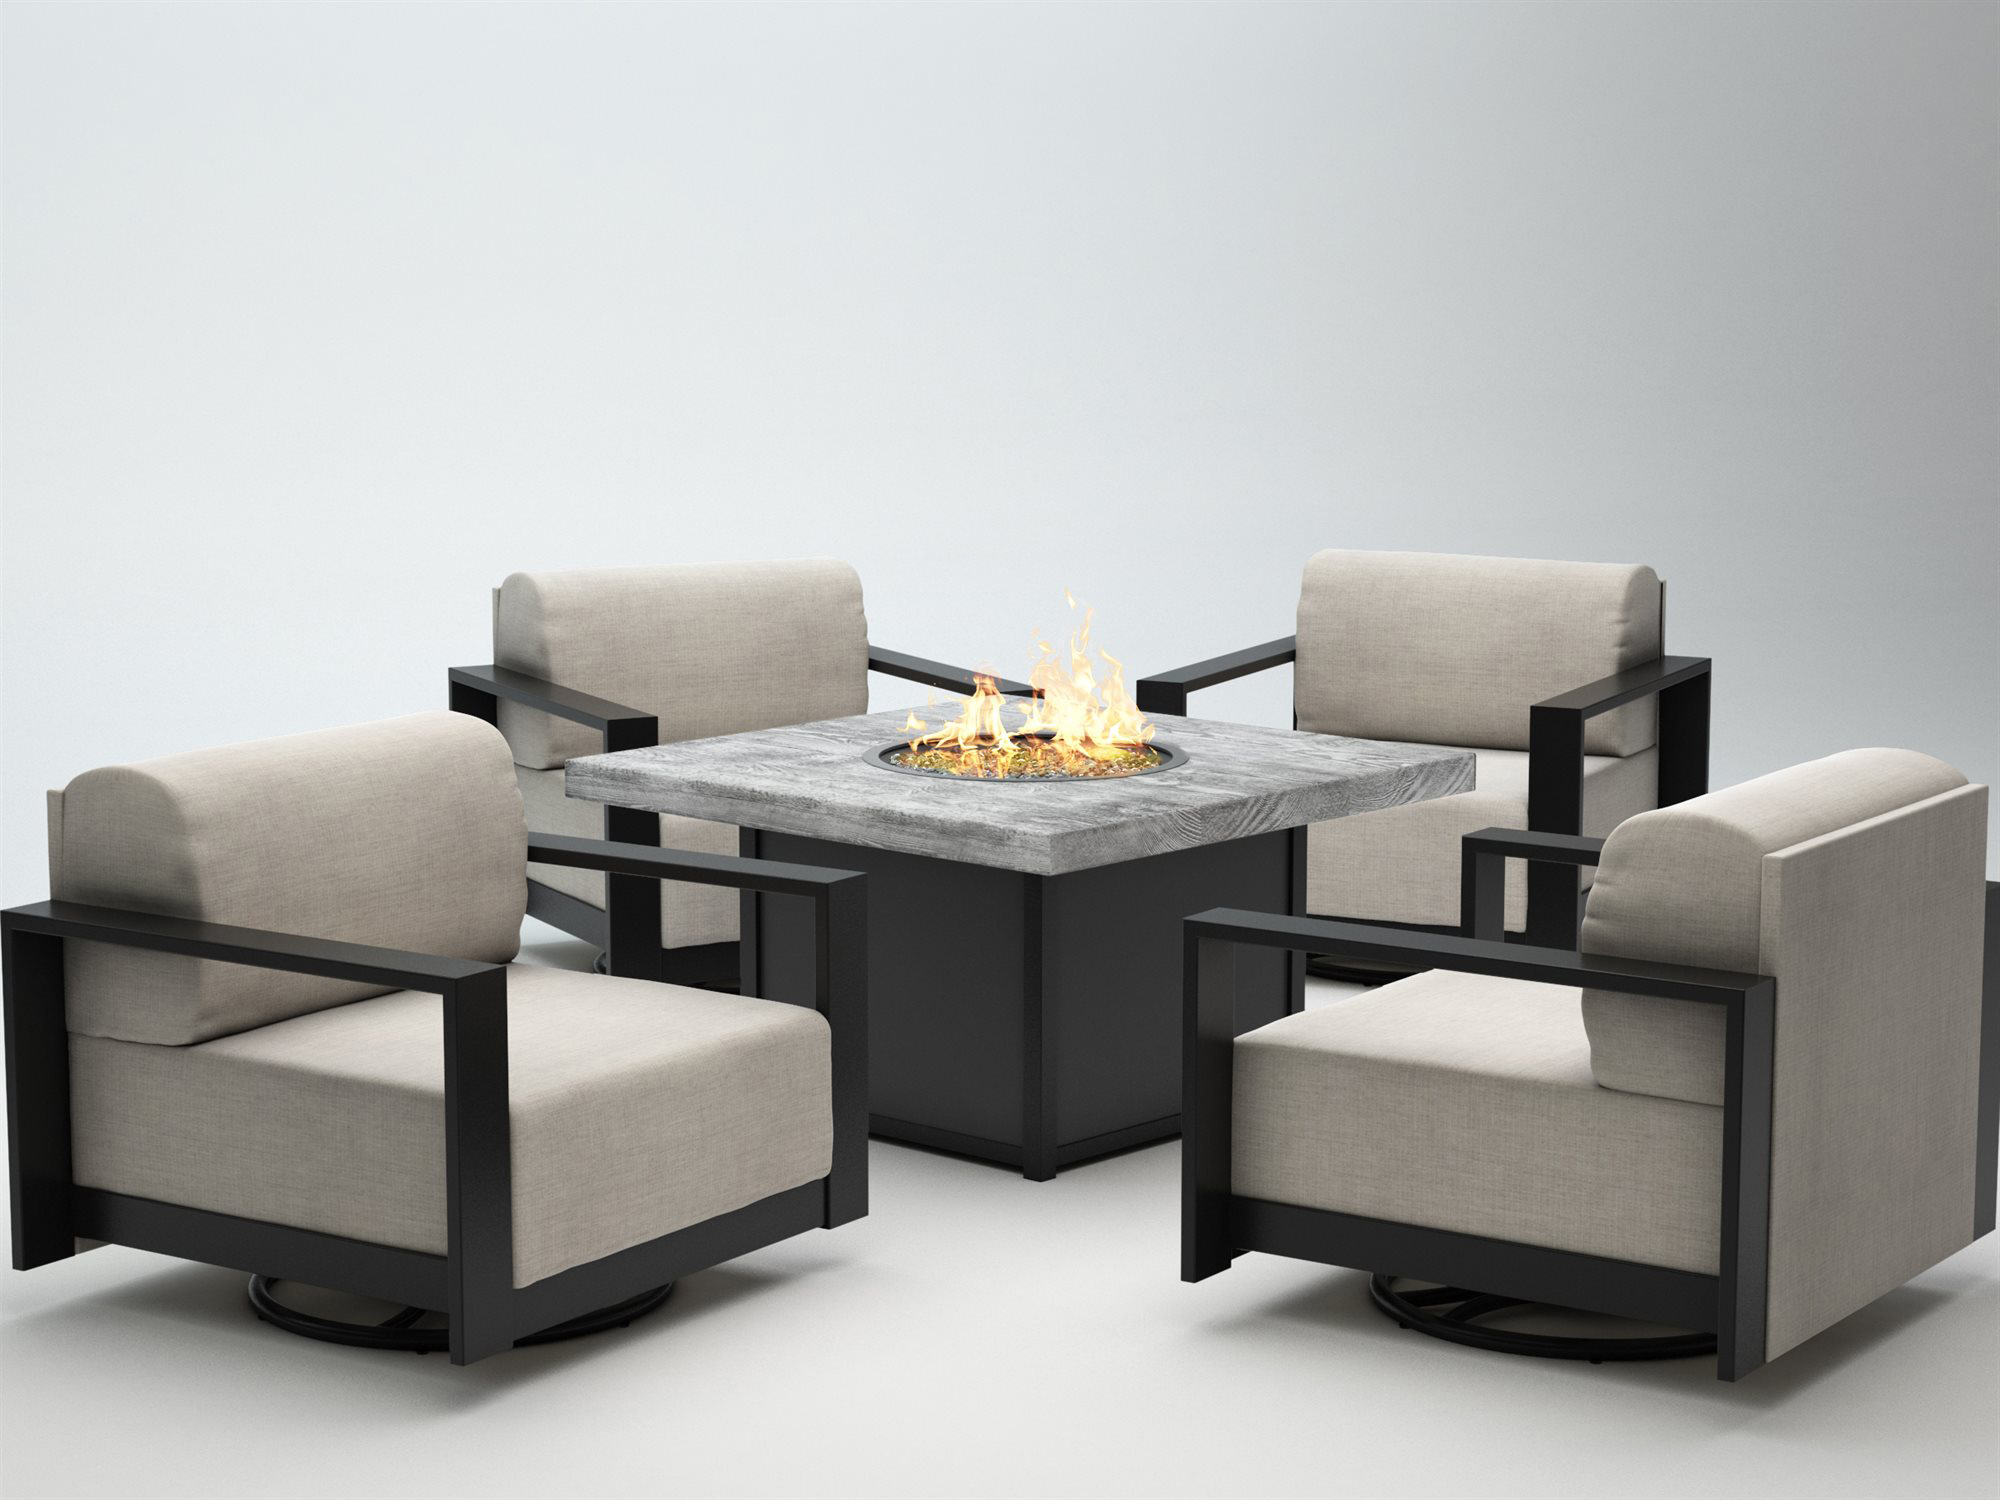 Homecrest Grace Cushion Aluminum Fire Pit Lounge Set ...